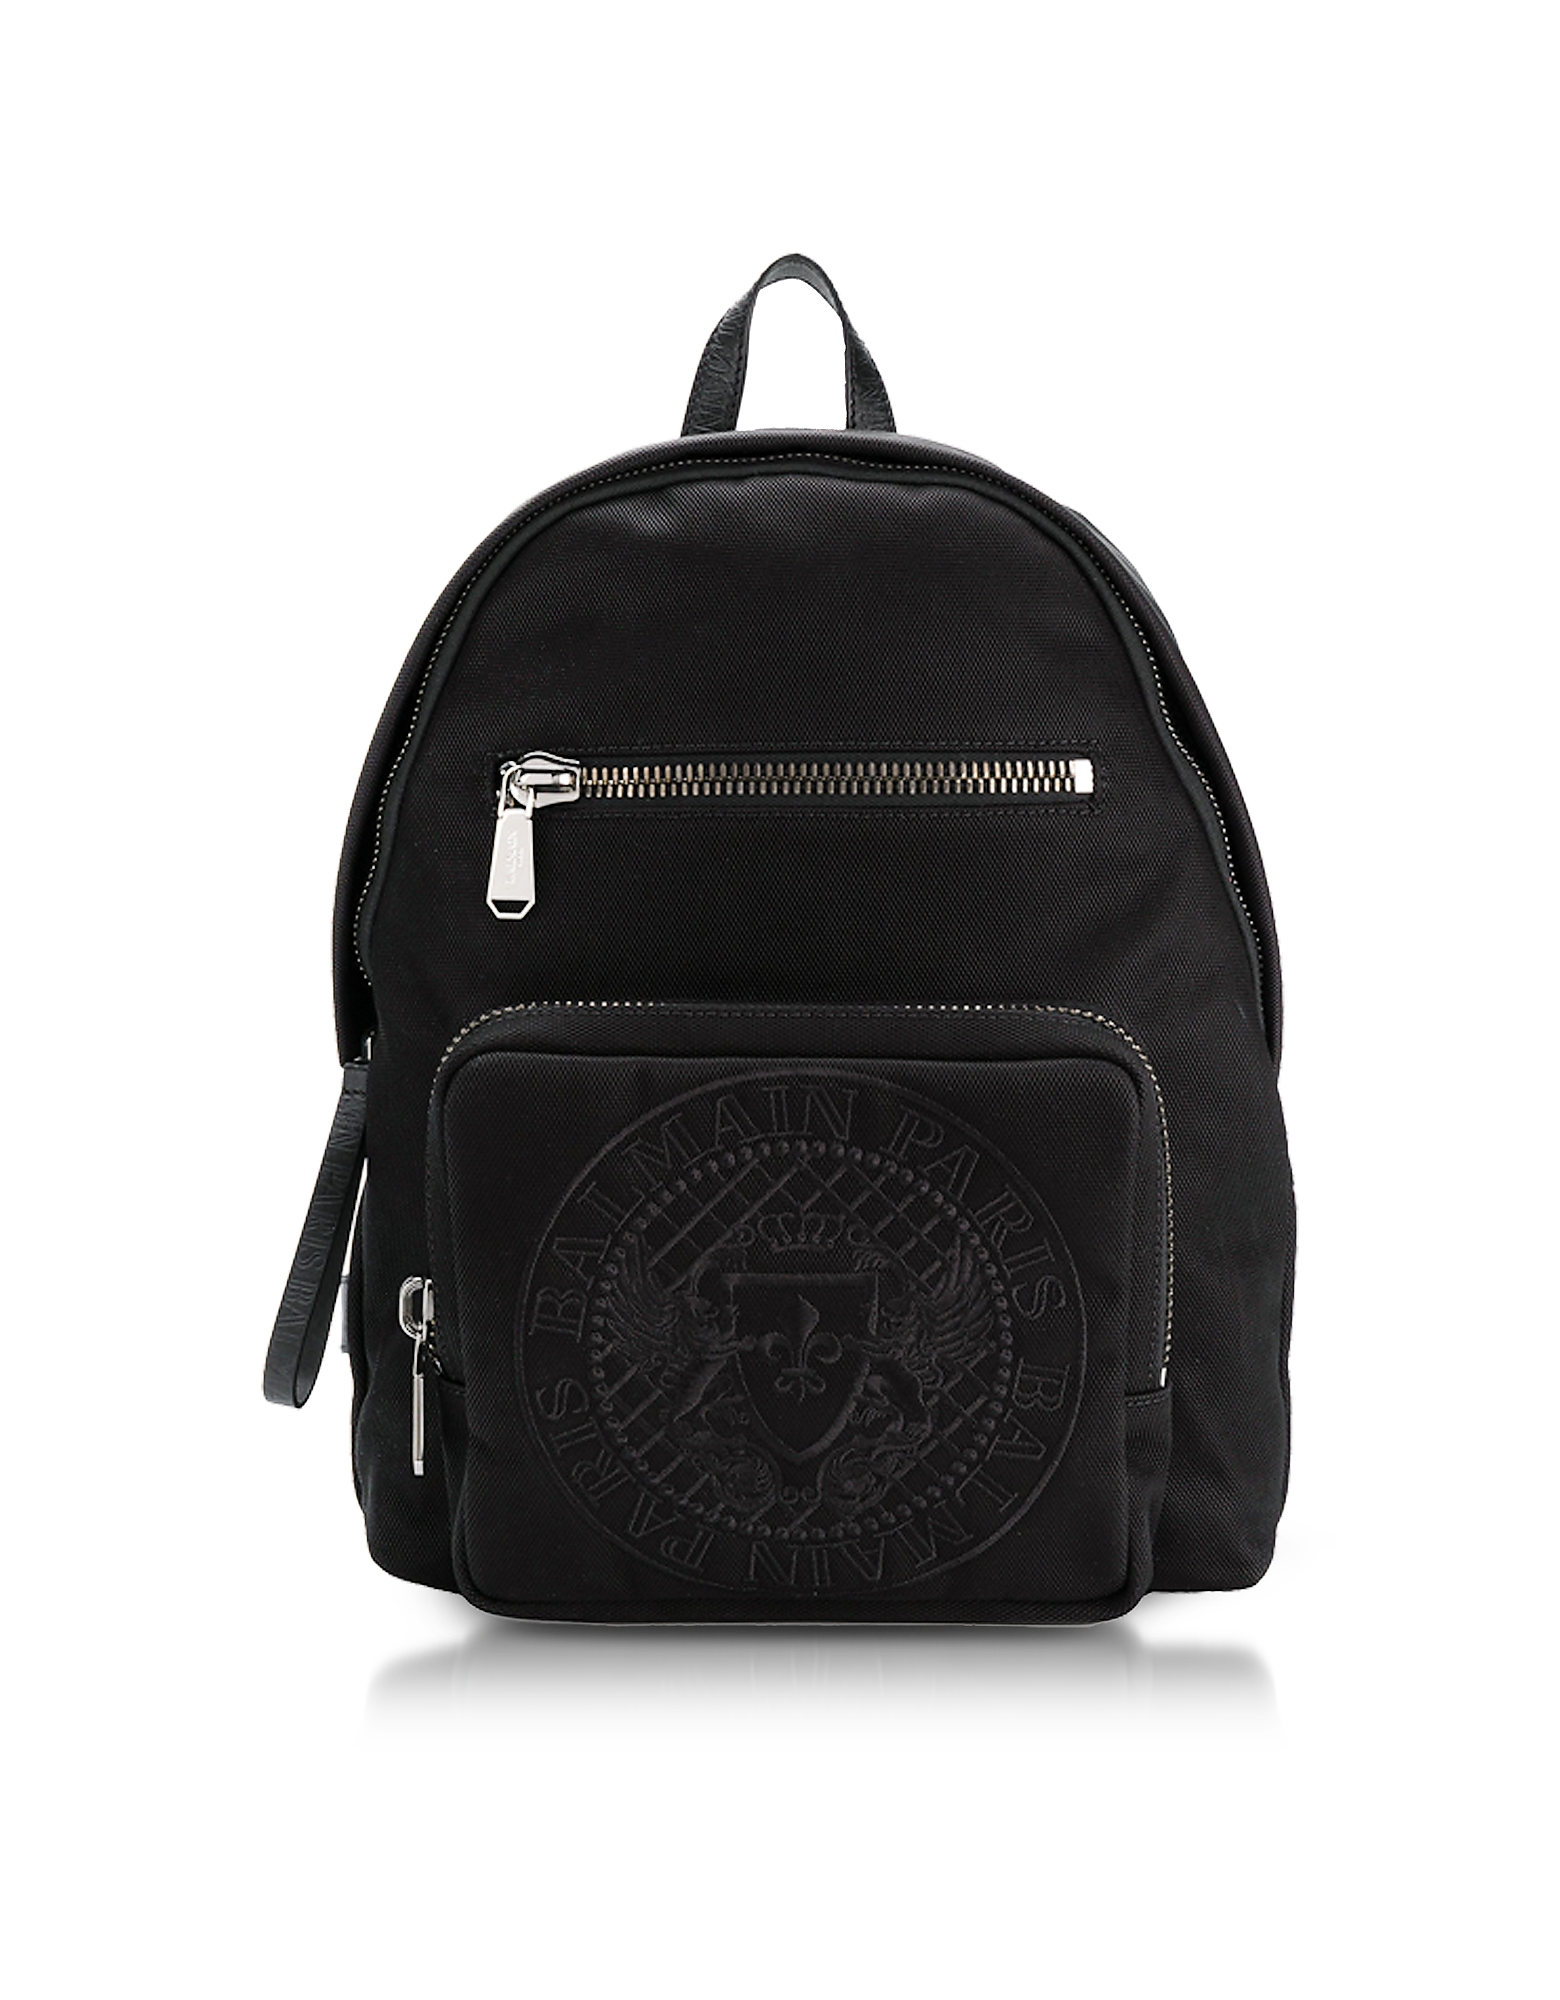 Balmain Backpacks, Black Nylon Men's Club Backpack w/Embossed Blazon